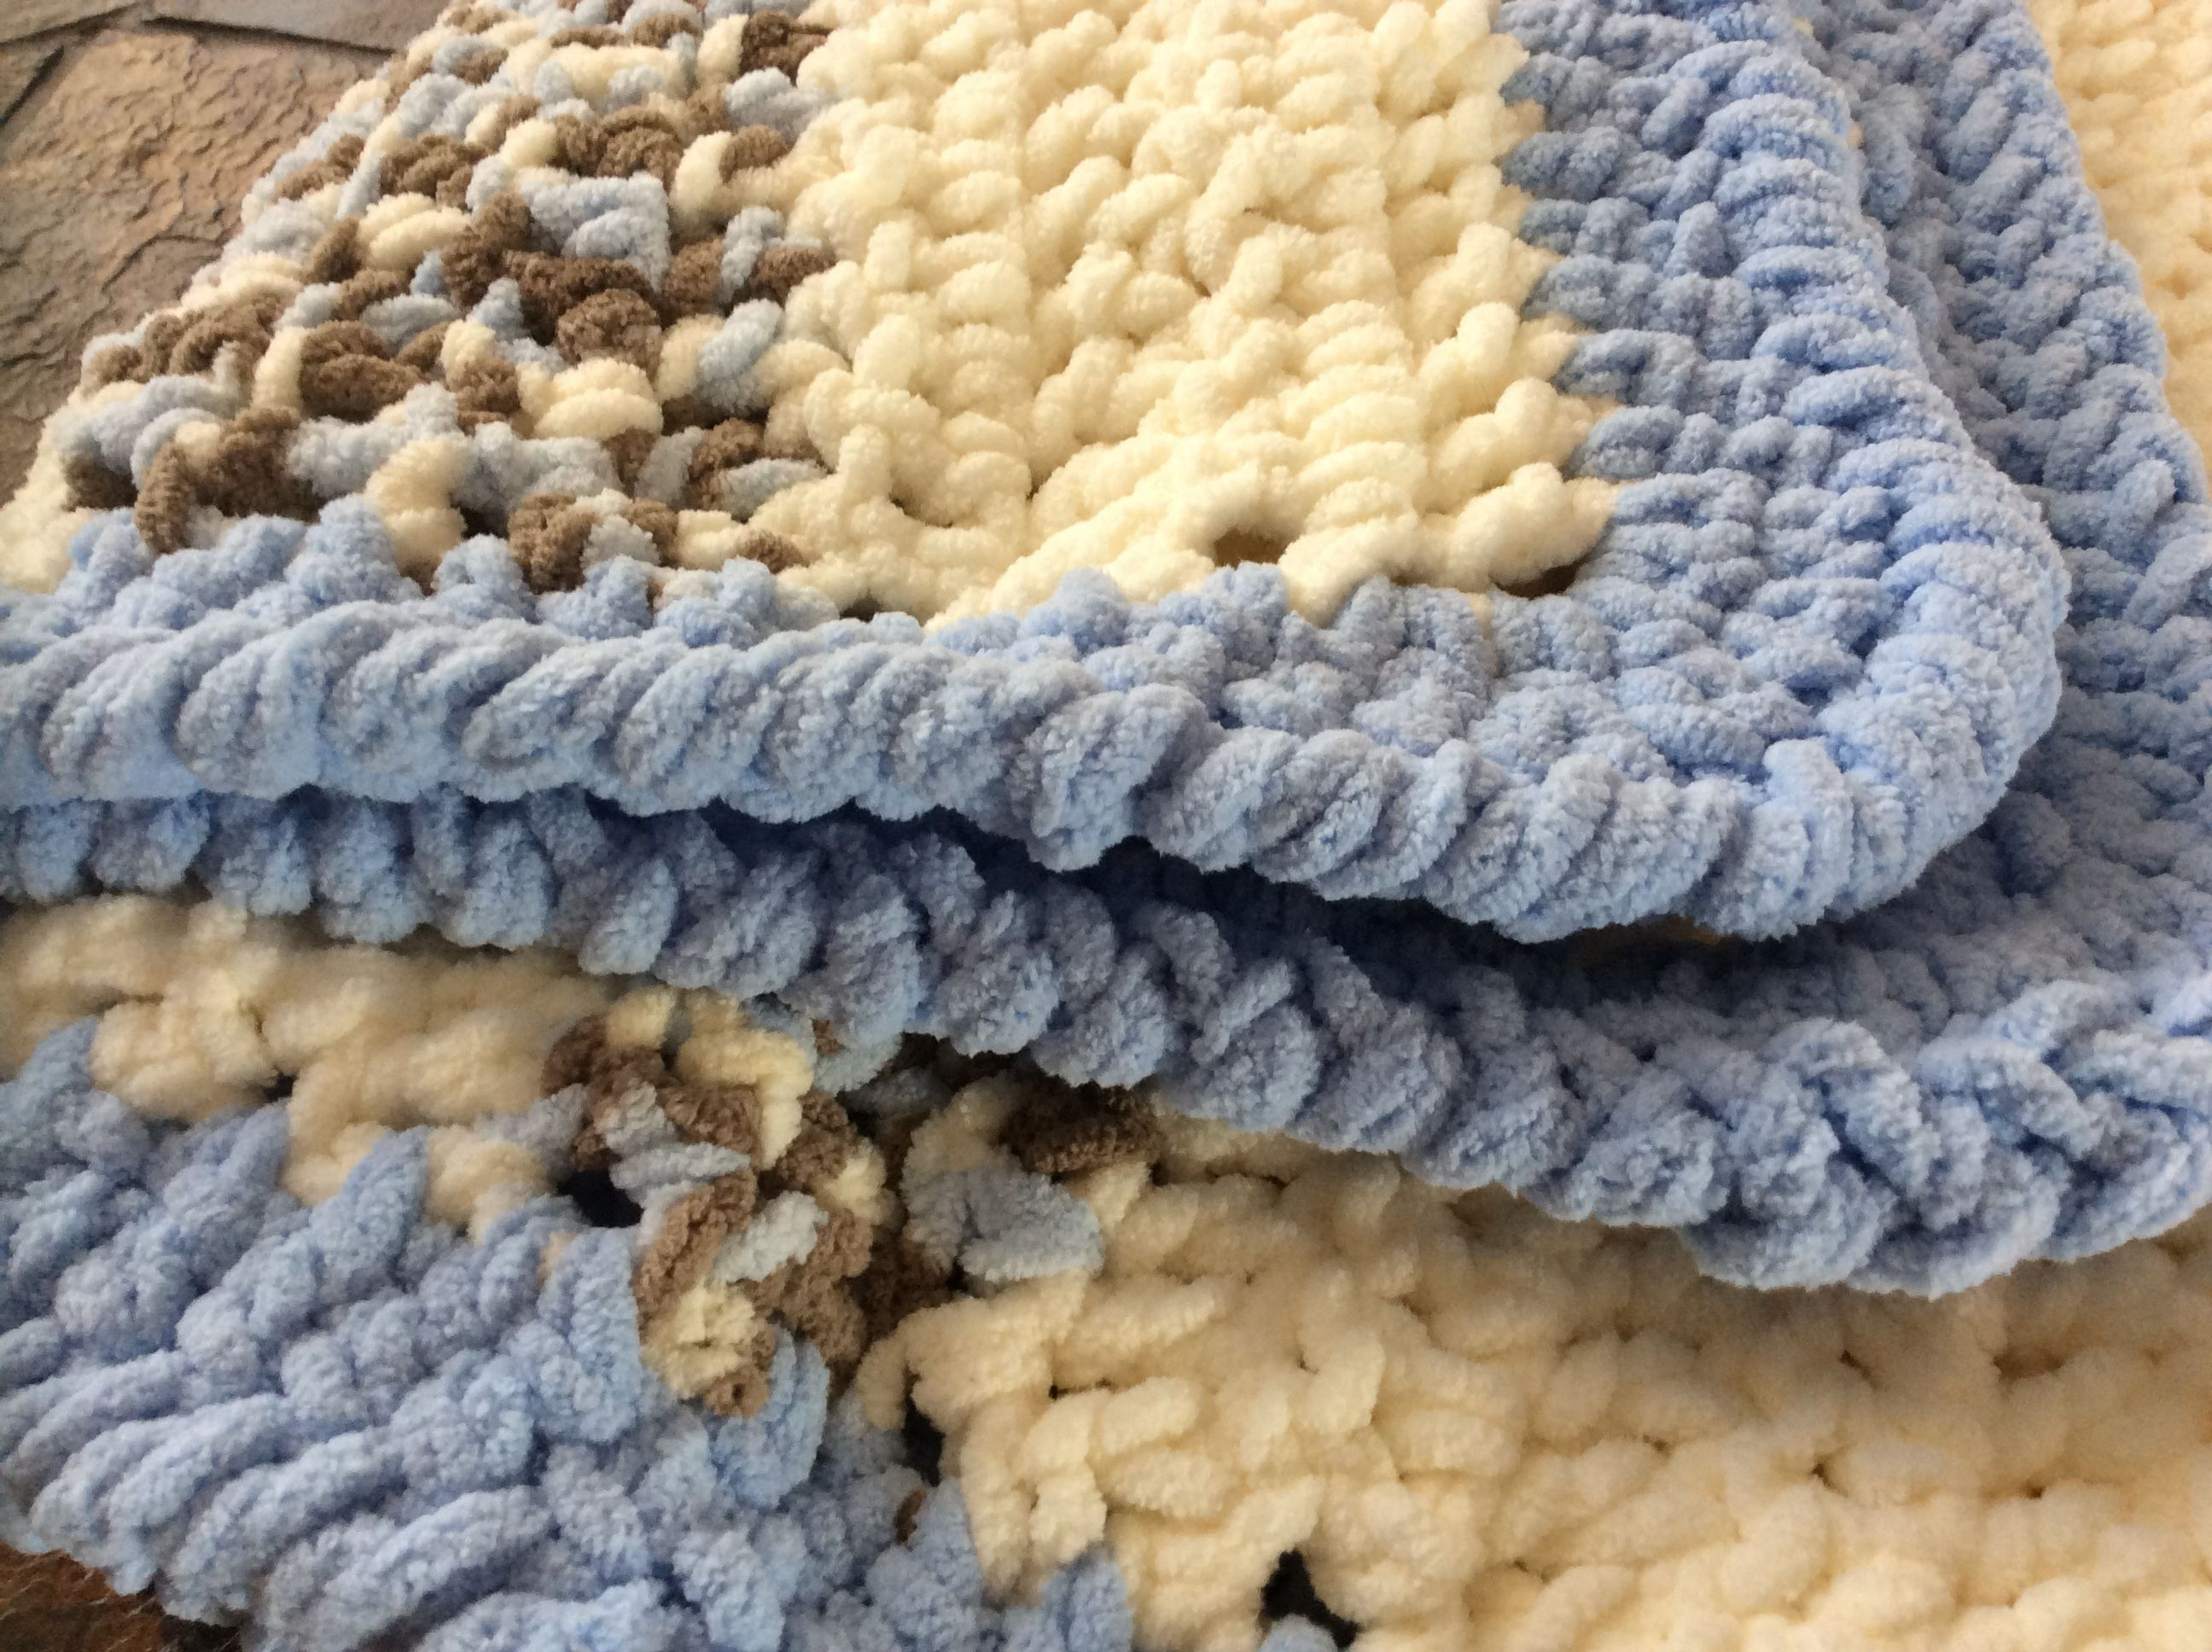 Inspirational Crochet Blanket My son Wanted A Very Cosy Blanket Used Bernat Baby Blanket Crochet Patterns Of Top 42 Ideas Bernat Baby Blanket Crochet Patterns